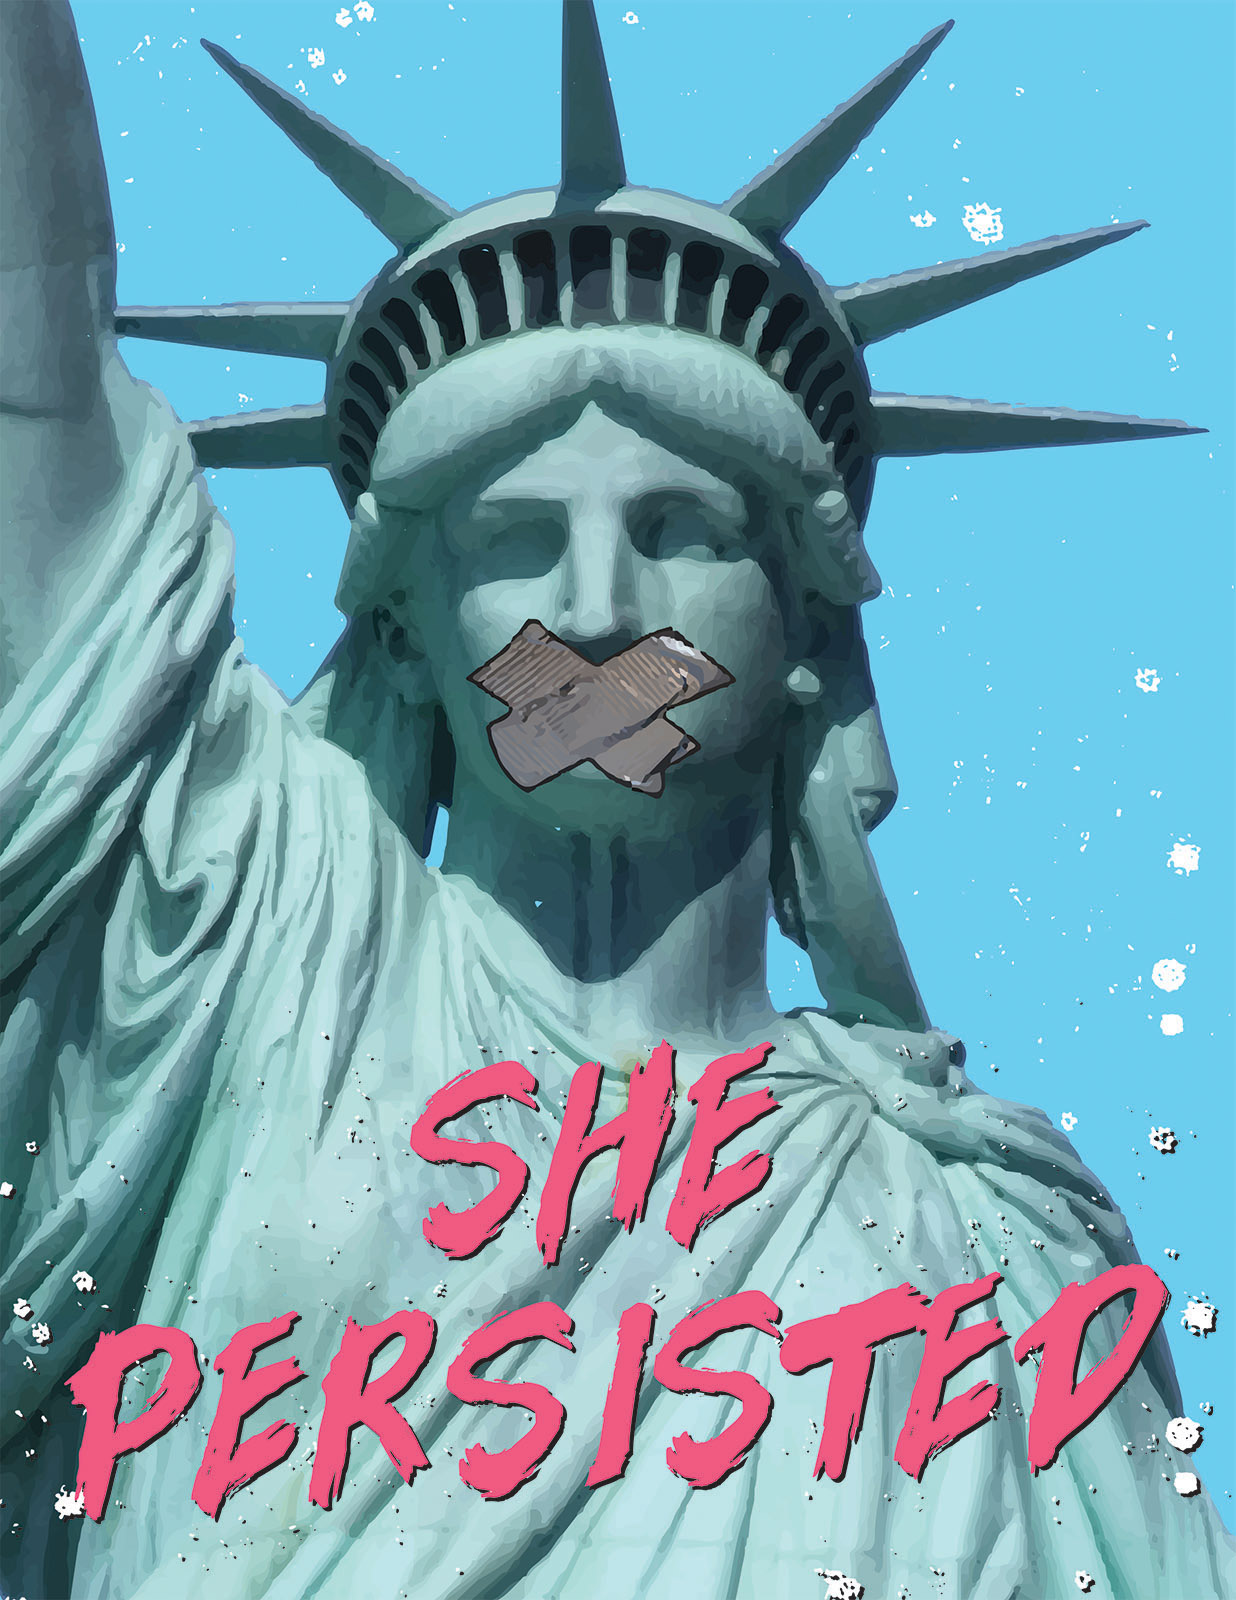 persisted8.5x11.jpg